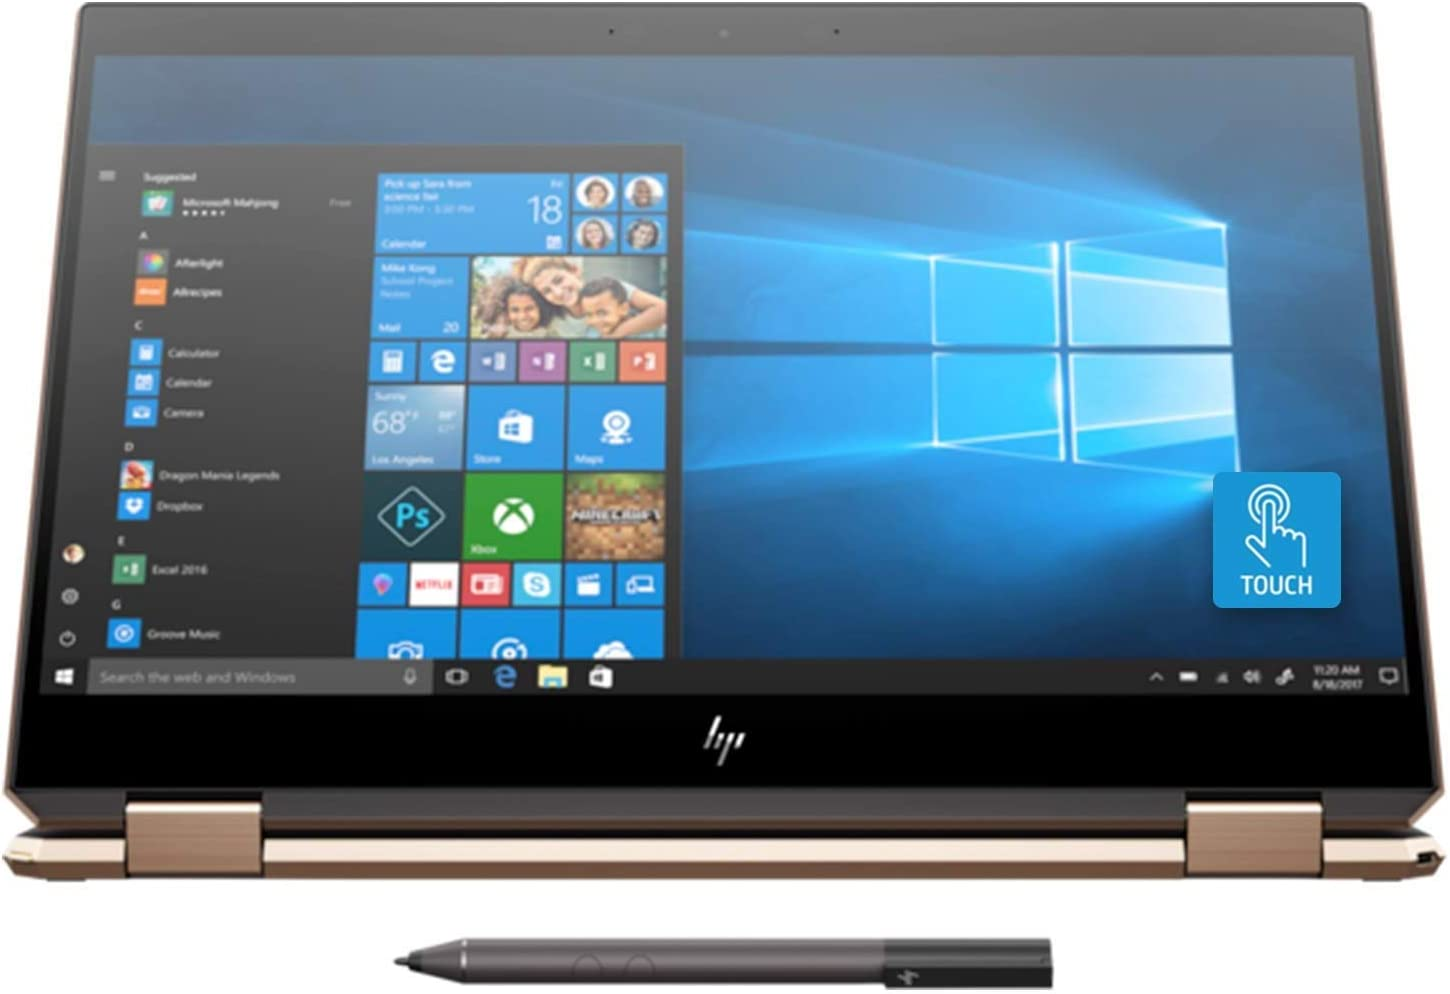 Newest HP Spectre x360 15t Touch AMOLED 10th Gen Intel i7-10510U with Pen, 3 Years McAfee Internet Security, Windows 10 Professional, HP Worldwide Warranty, 2-in-1 Laptop PC (16GB, 1TB SSD, Dark Ash)